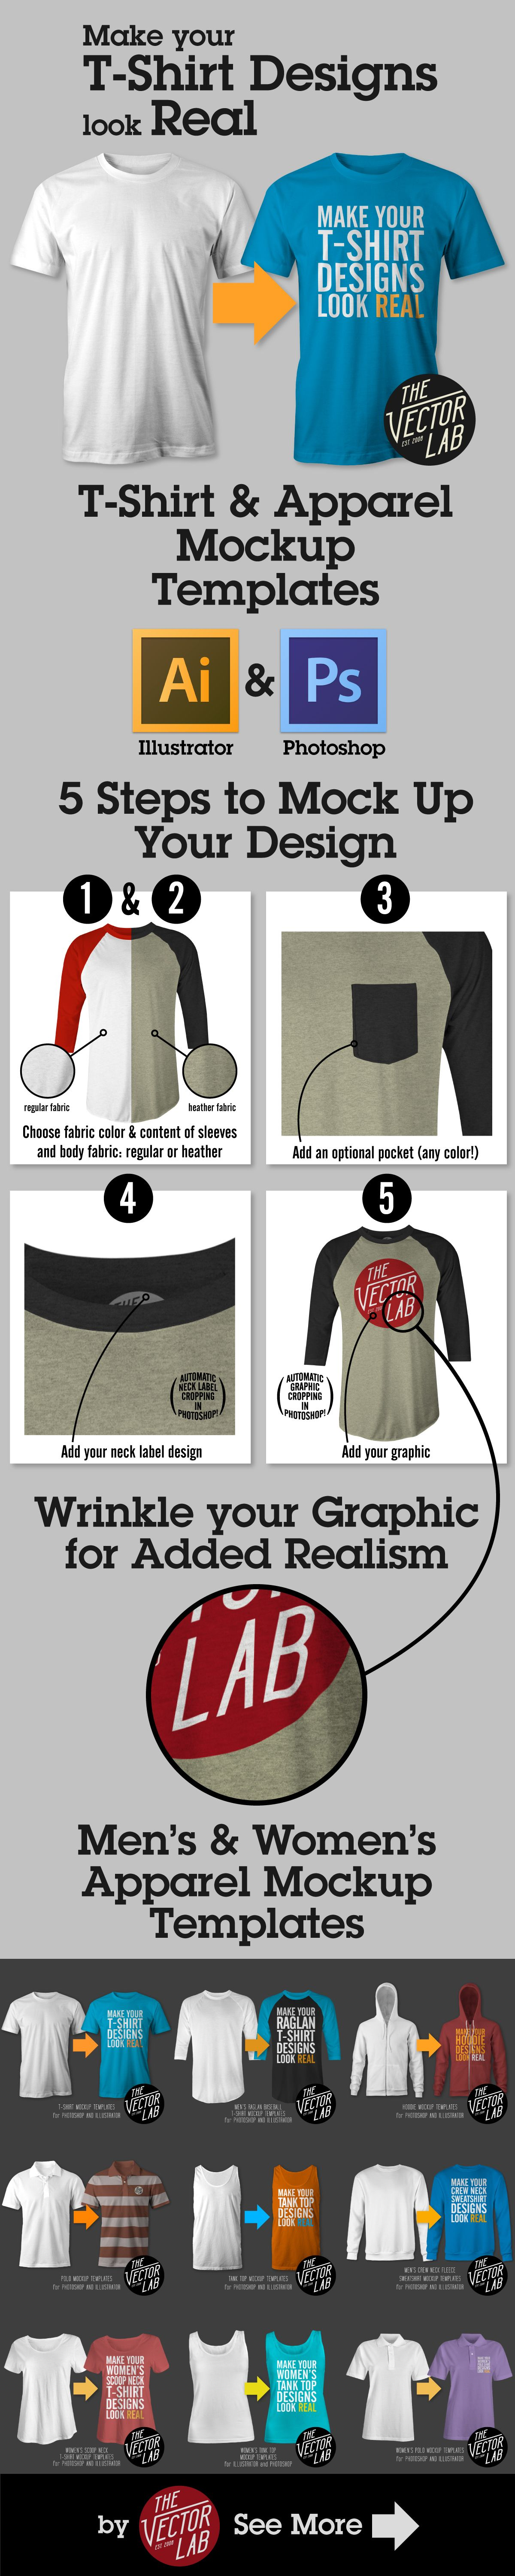 T Shirt Mockup Templates For Photoshop And Illustrator Http Pentul Men Thevectorlabcom Collections Mens Apparel